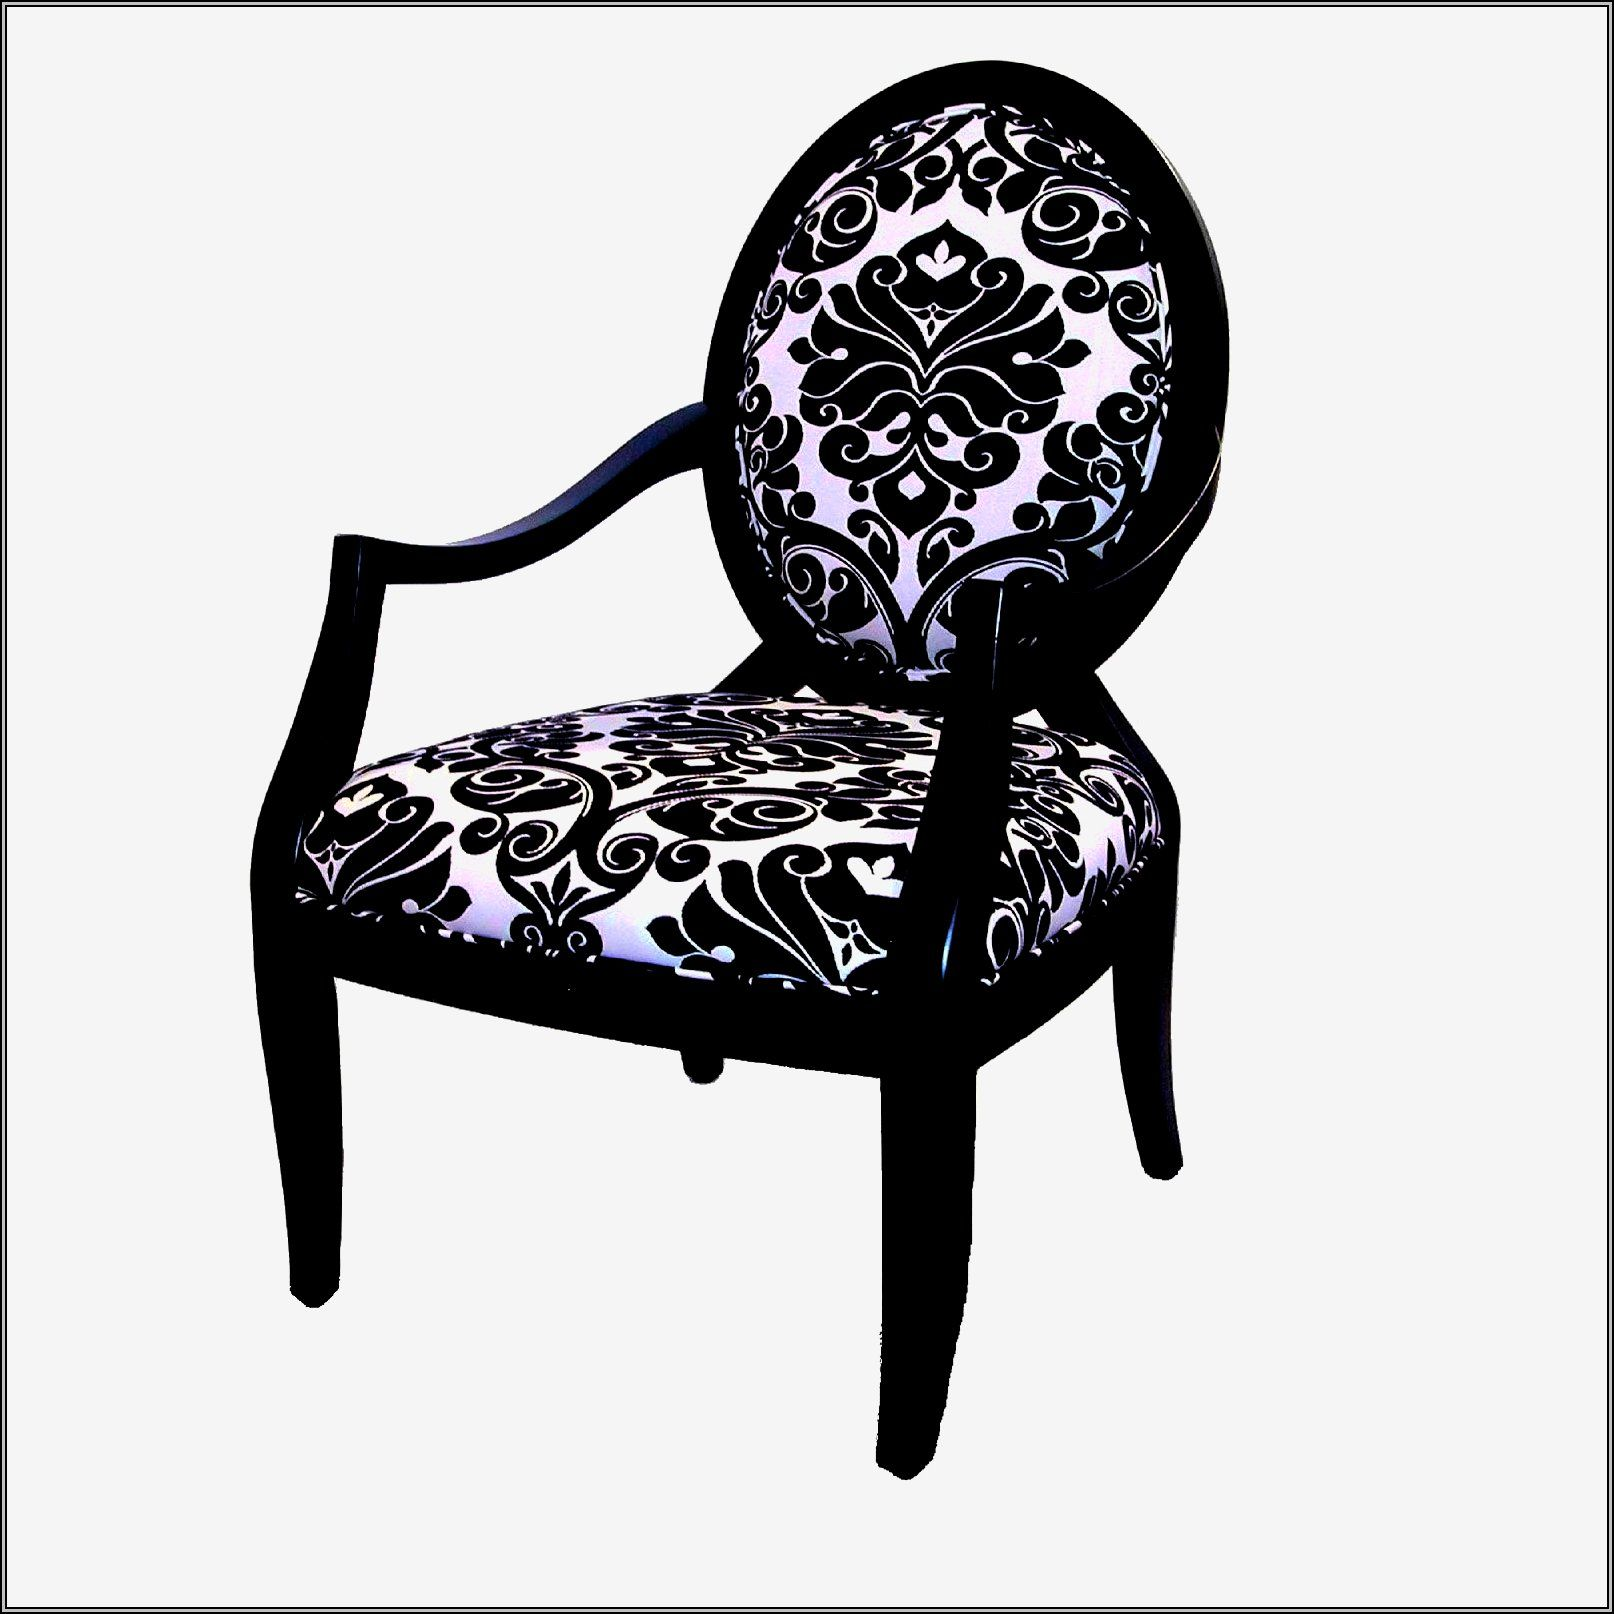 Classic accent chairs - Marvelous Assorted Accent Chairs Under 200 For Your Home Decoration Classic Accent Chairs Under 200